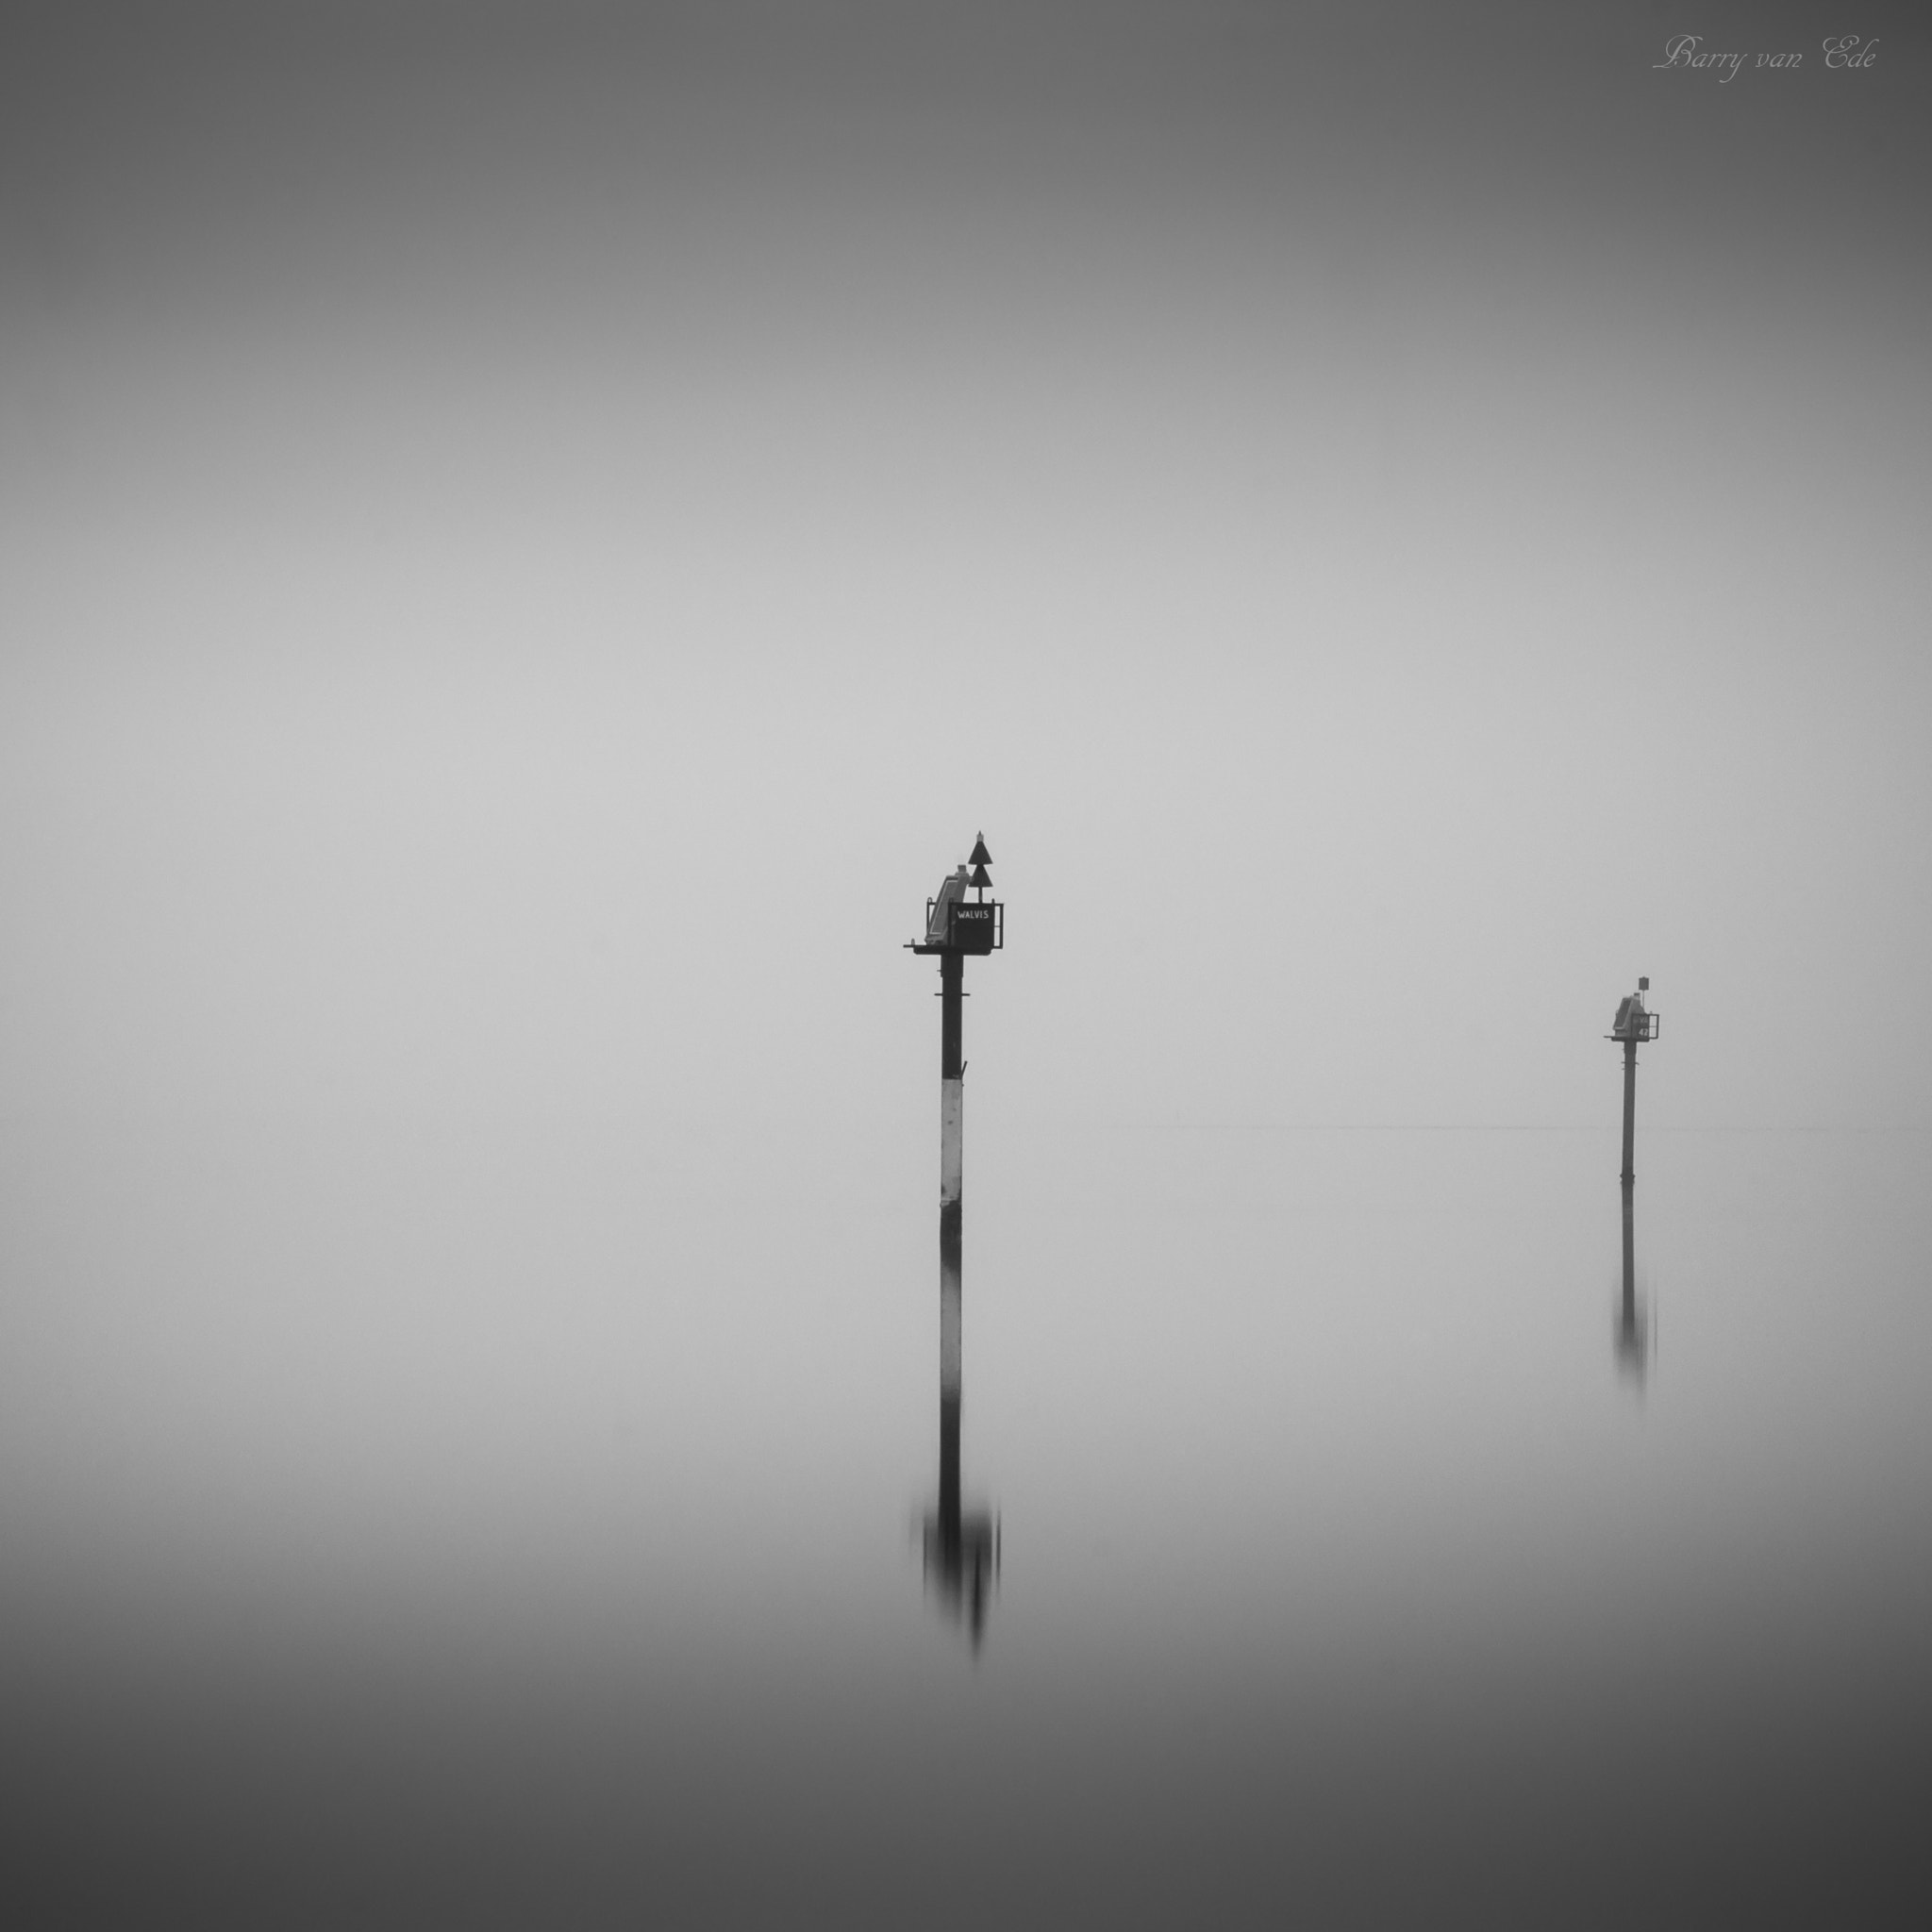 Photograph Silence by Barry van Ede on 500px